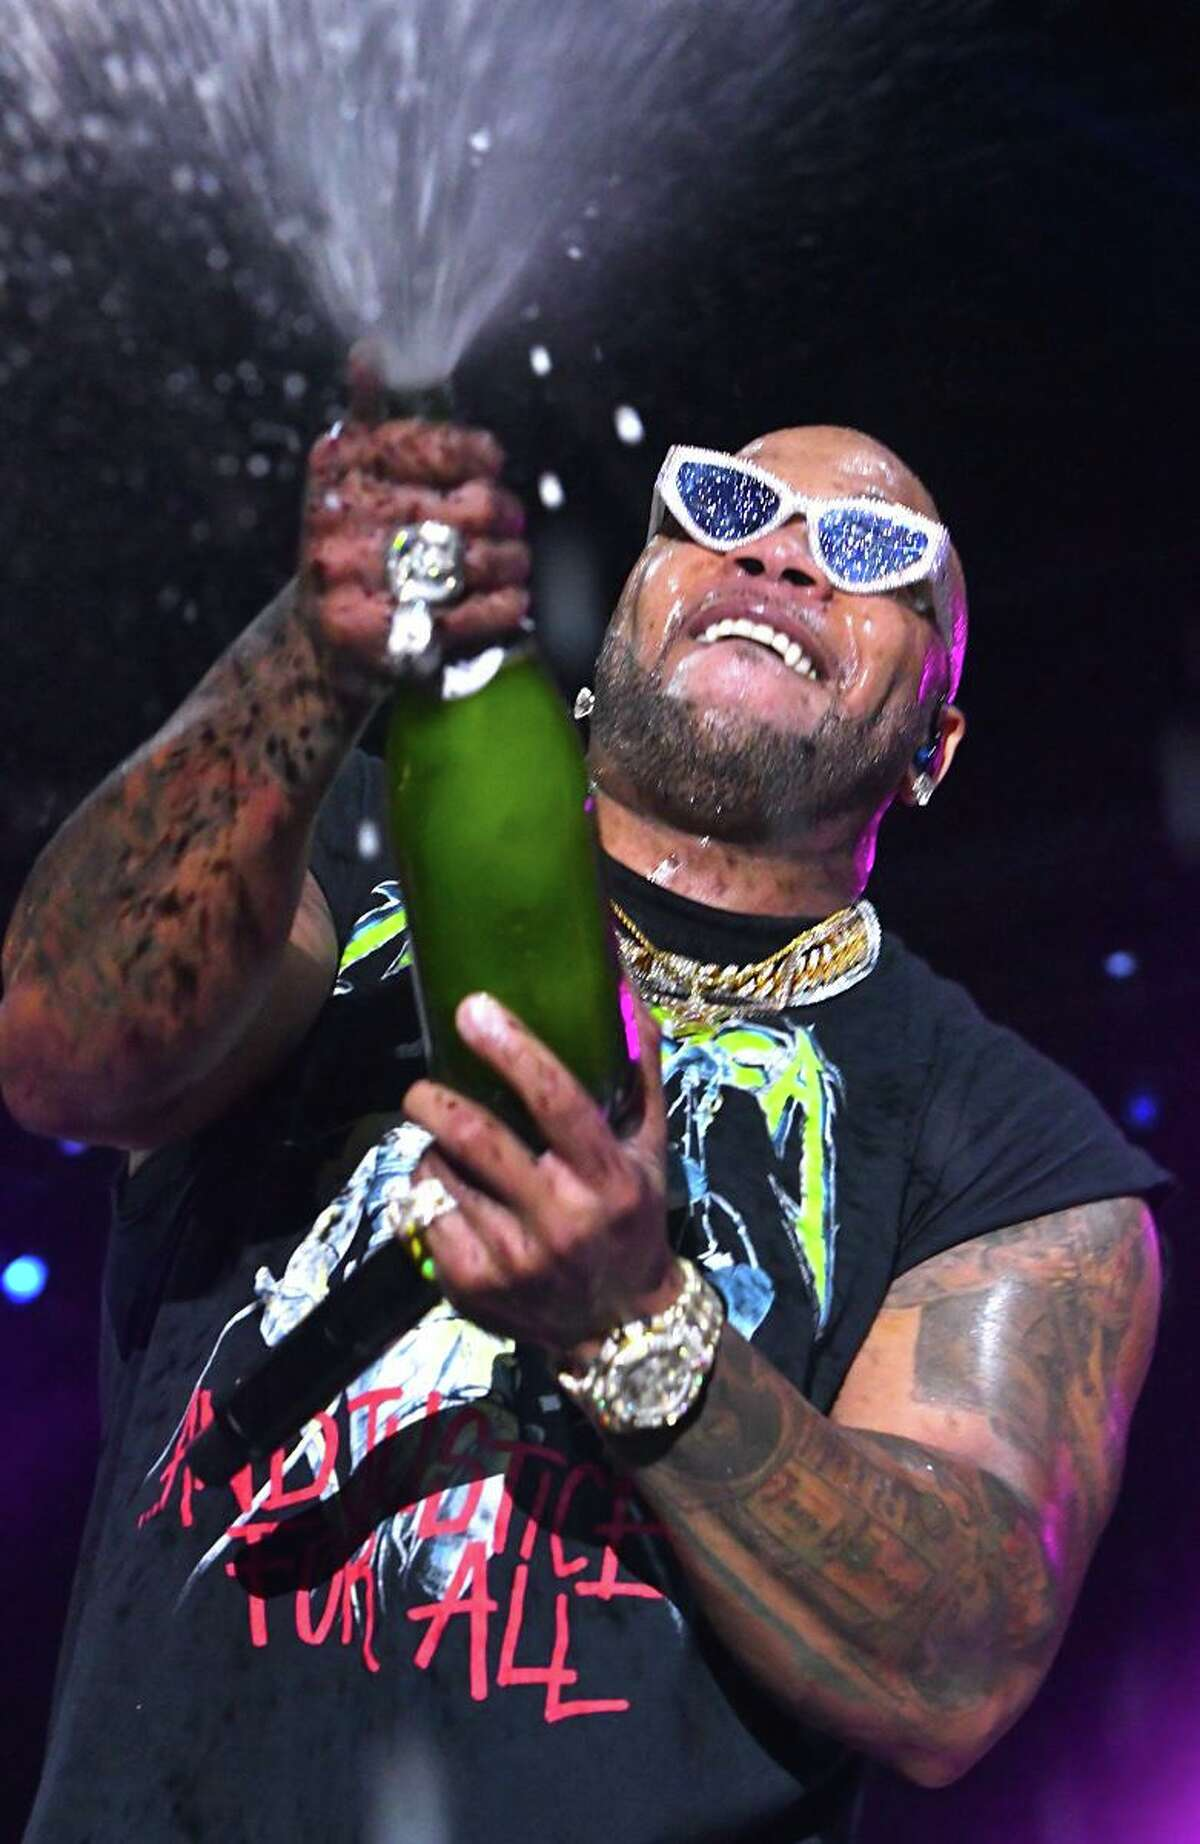 """Rapper Tramar Dillard, better known by his stage name Flo Rida is shown popping a bottle of champagne during his """"live"""" in concert performance at The Big E in West Springfield, Massachusetts on Sept. 25, 2021."""